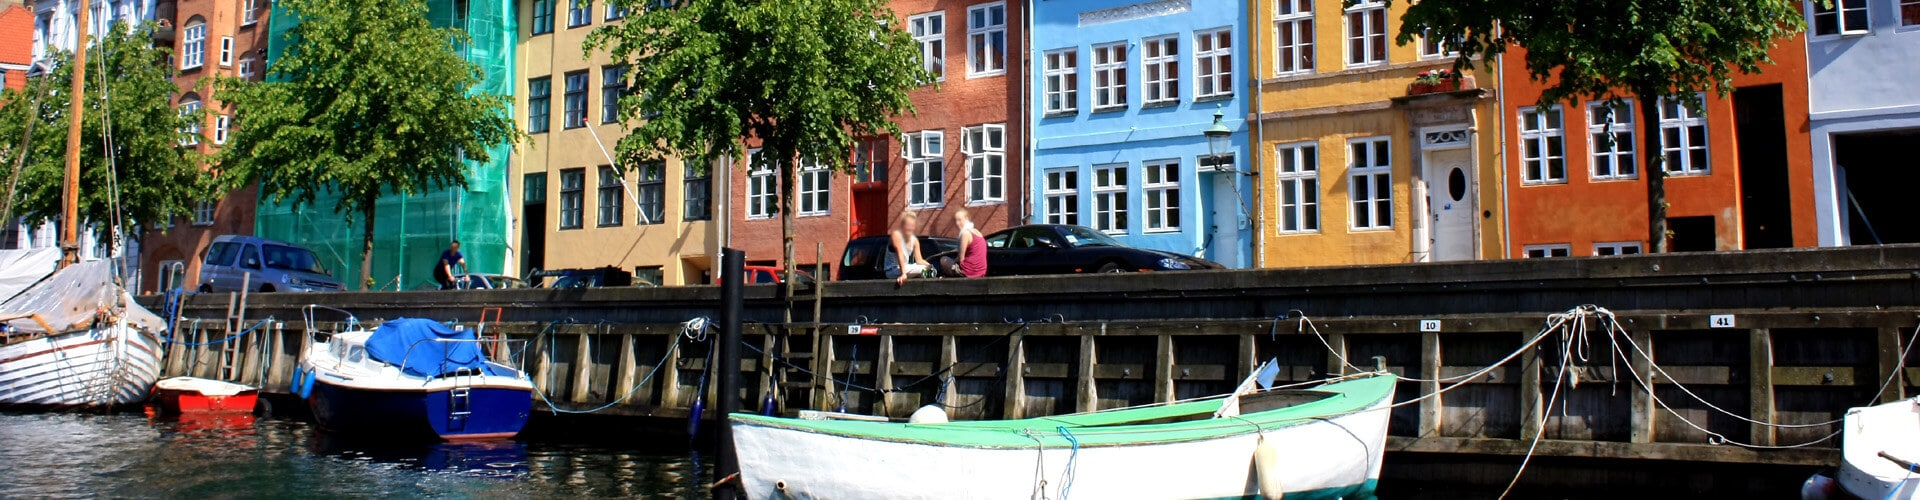 Copenhagen, Denmark: The City That Leads by Example